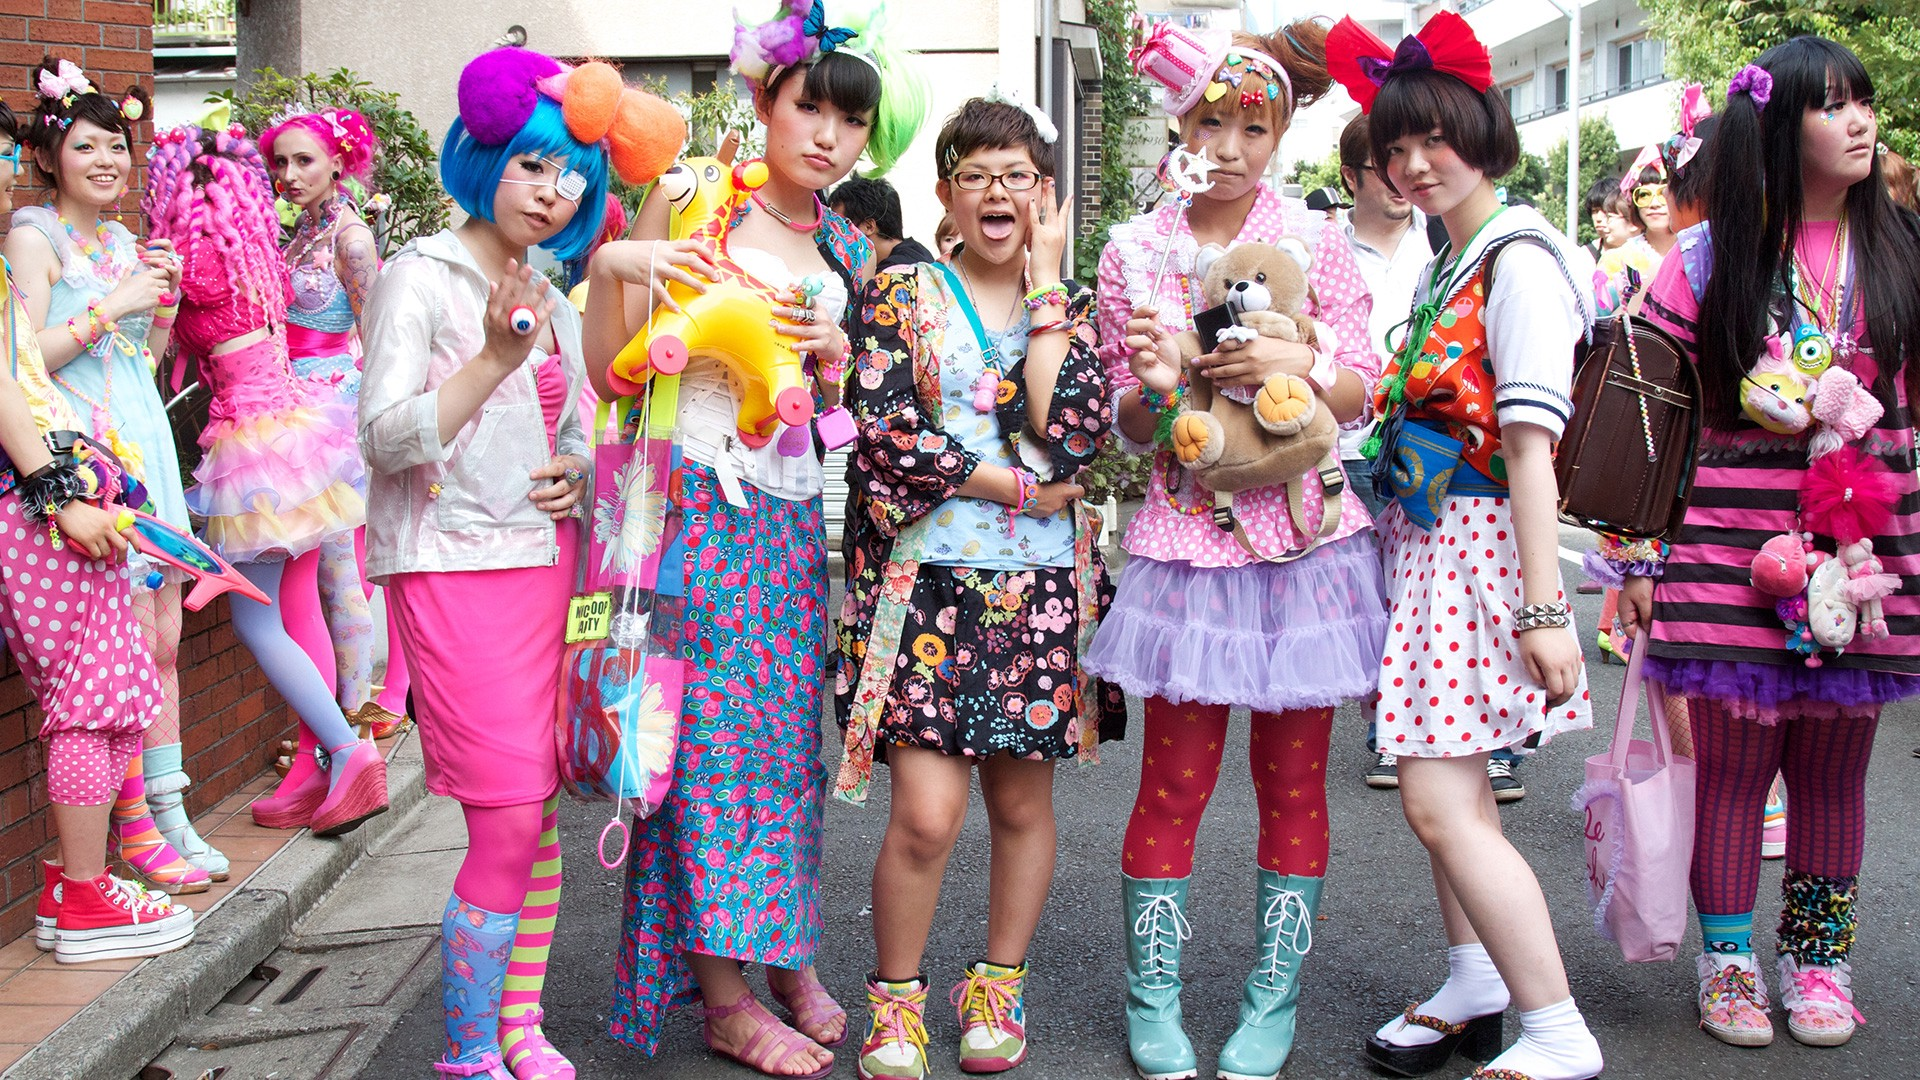 15d8e5666c6 Japanese Street Fashion — 10 Things You Need To Know in 2016